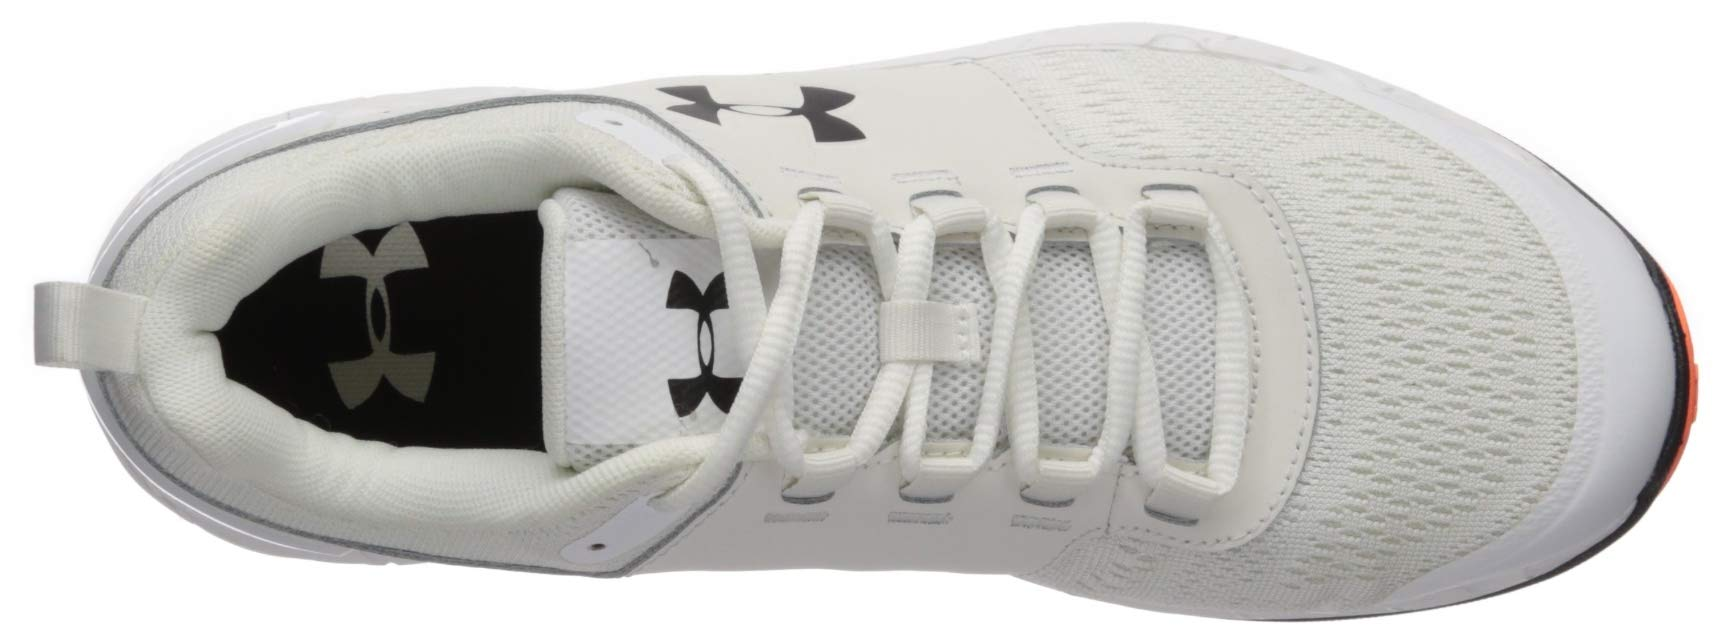 Under Armour Men's Commit TR EX Sneaker, Onyx White (108)/Black, 7 M US by Under Armour (Image #7)